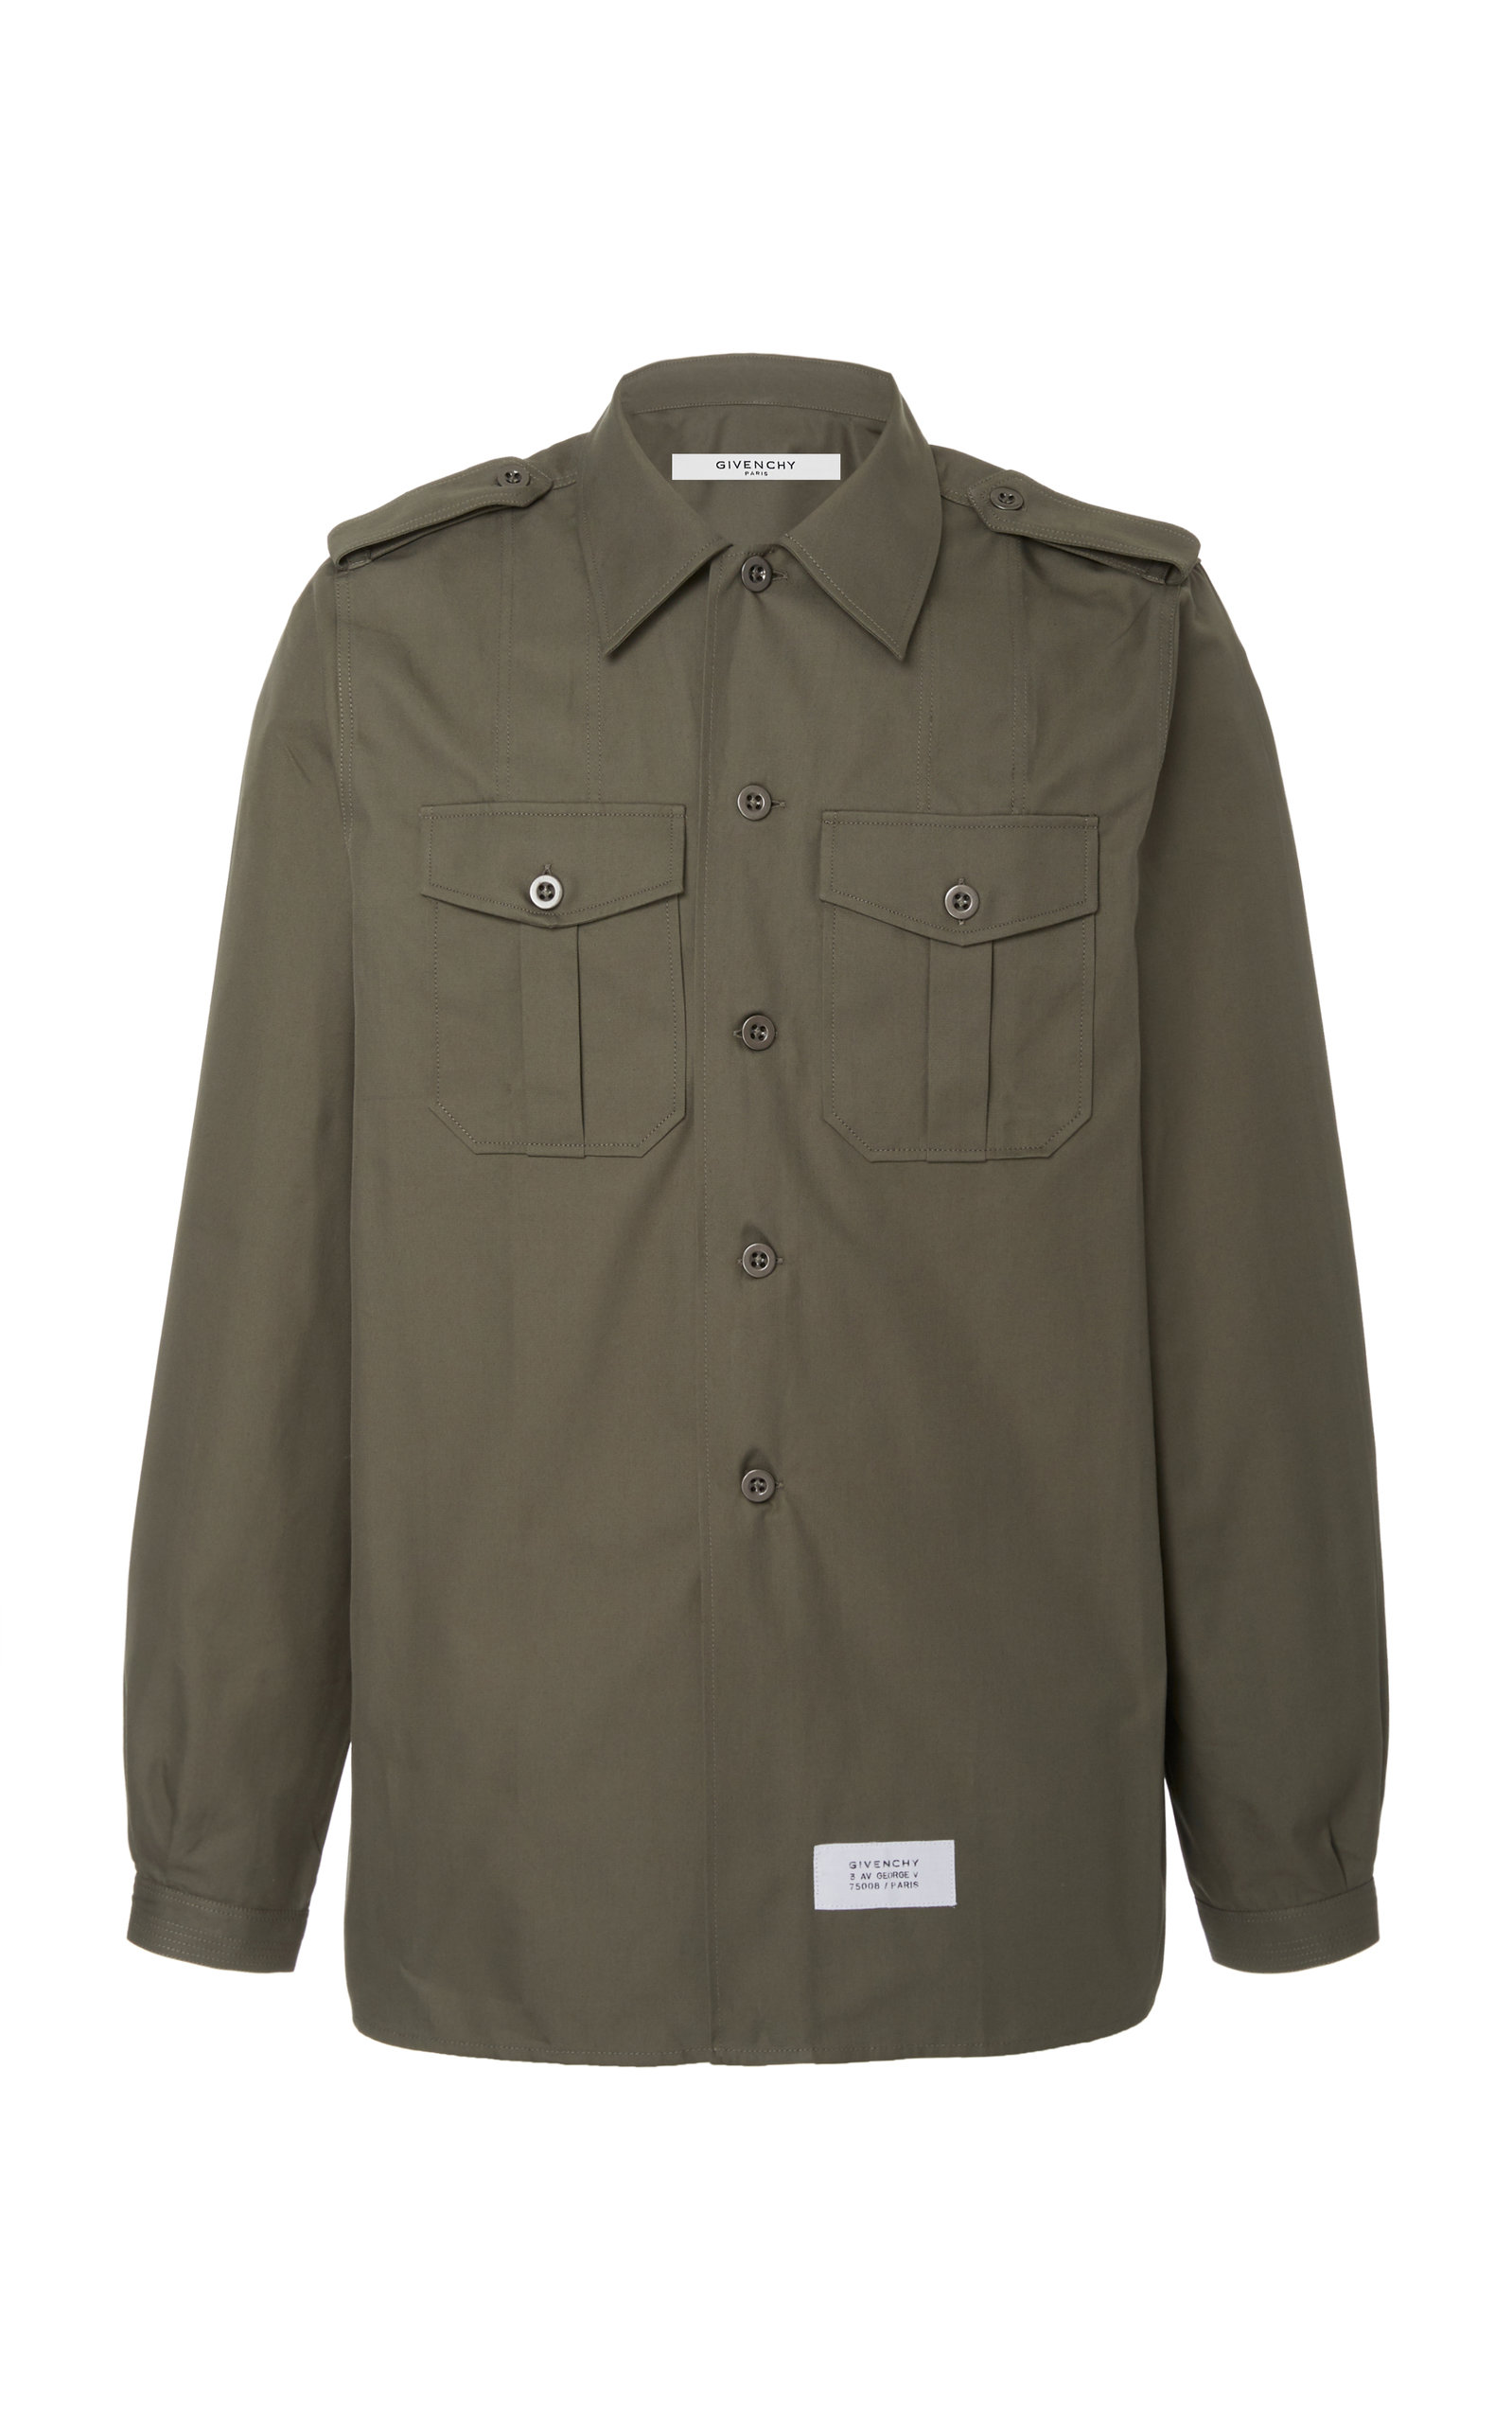 Givenchy T-shirts Cotton And Linen Twill Military Shirt